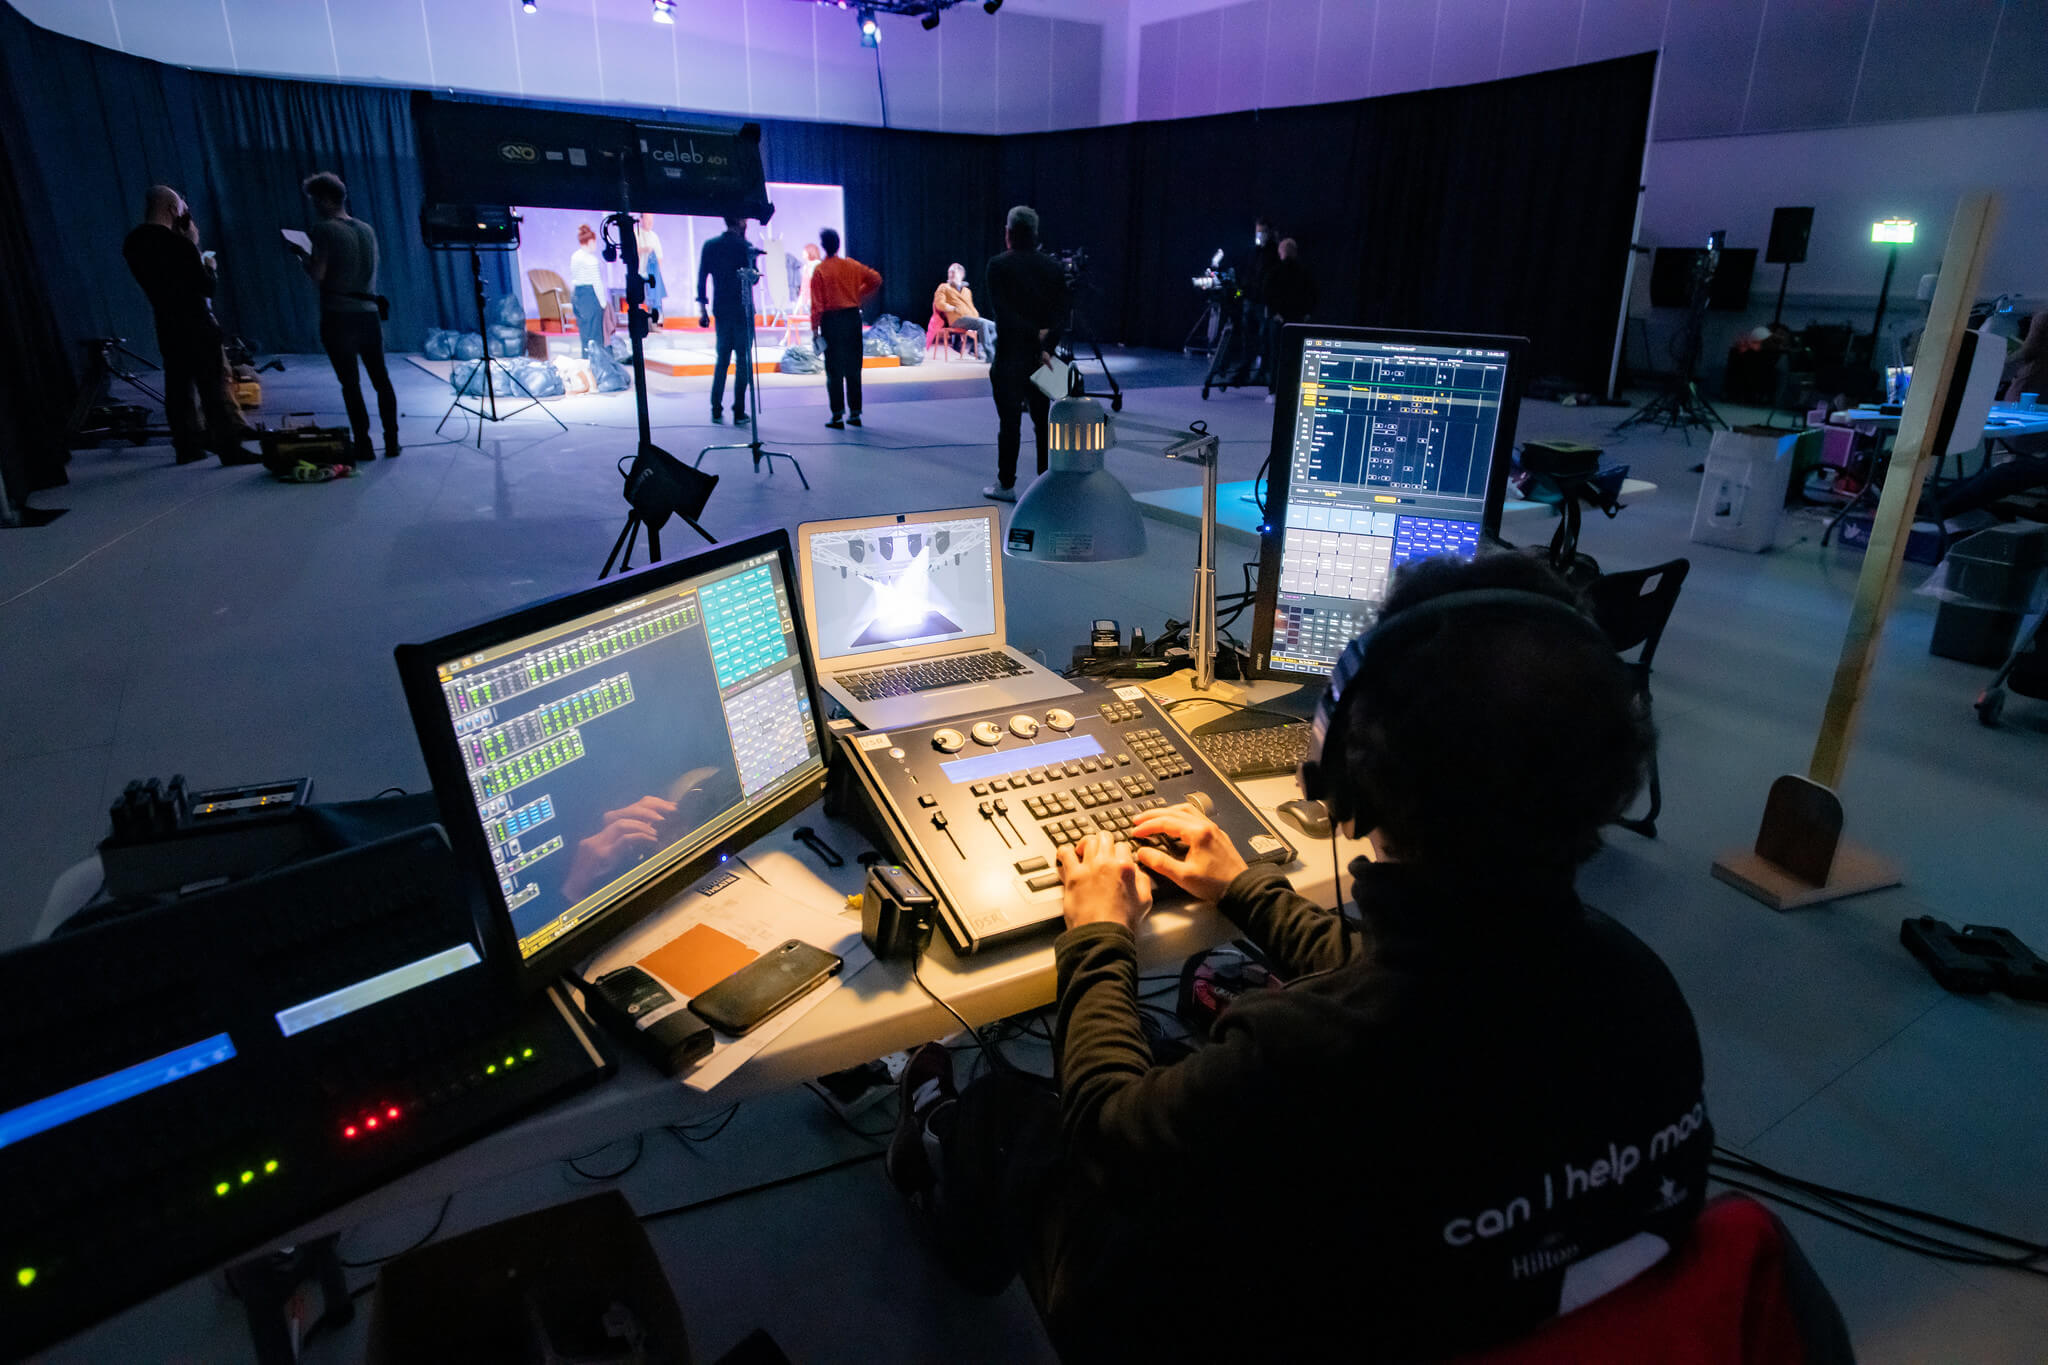 Rehearsal image for Fibres films showing the recording desk and the stage set being filmed in the background